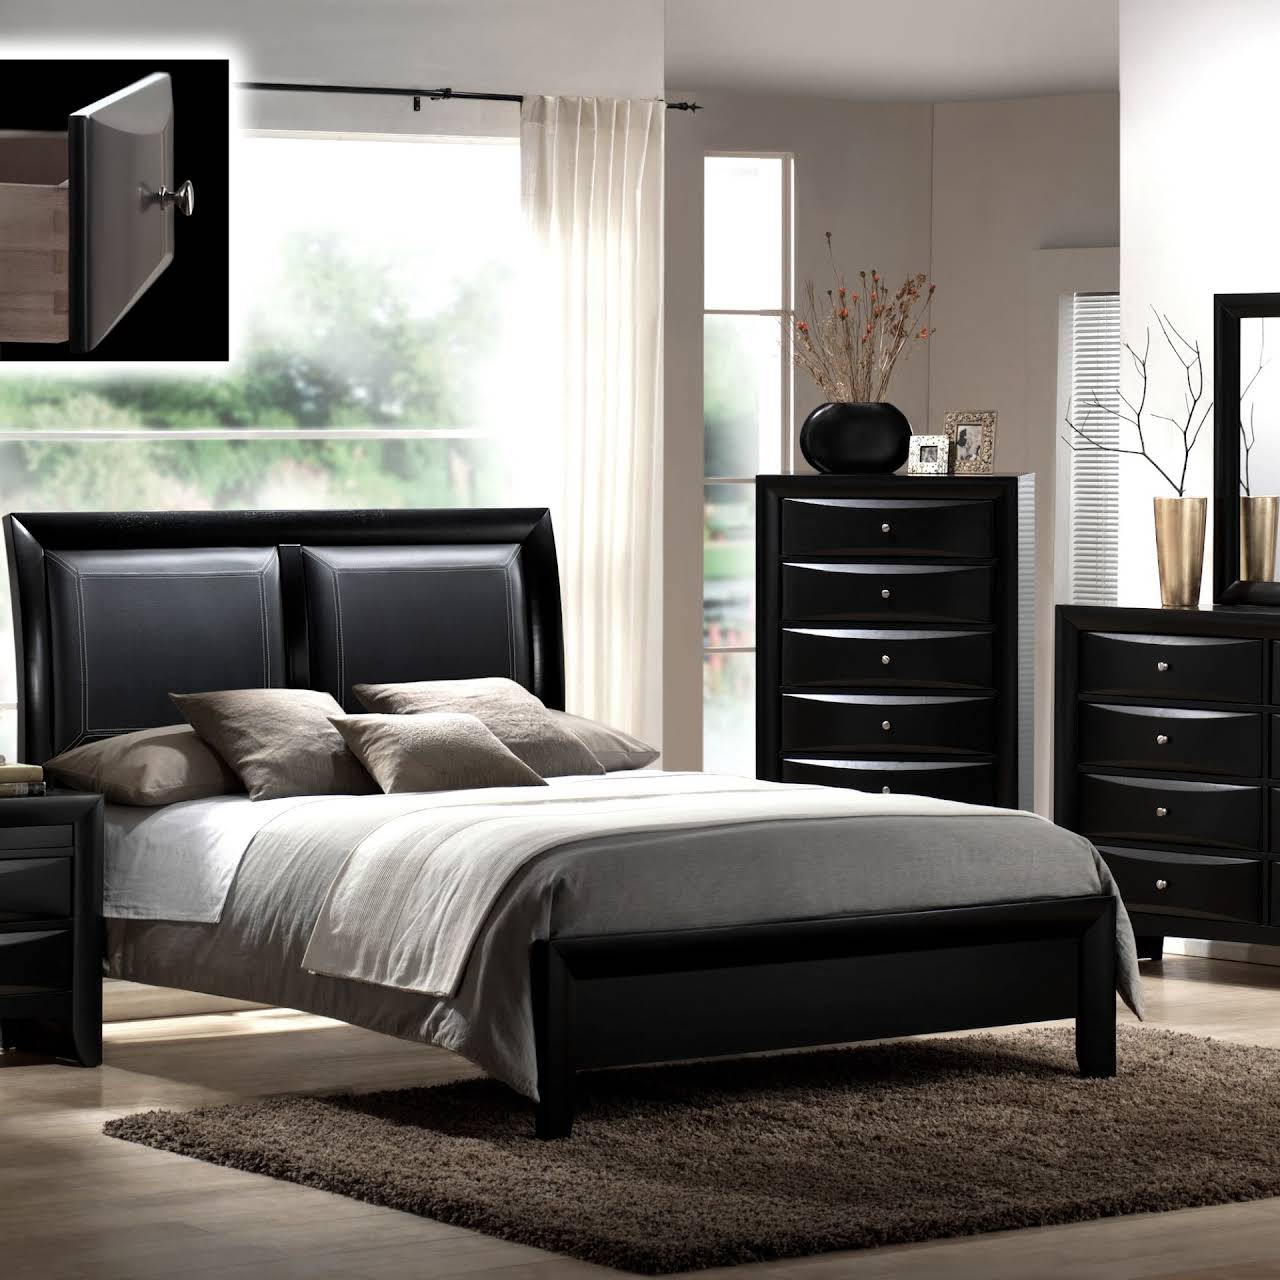 Clearinghouse Furniture In Stone Mountain